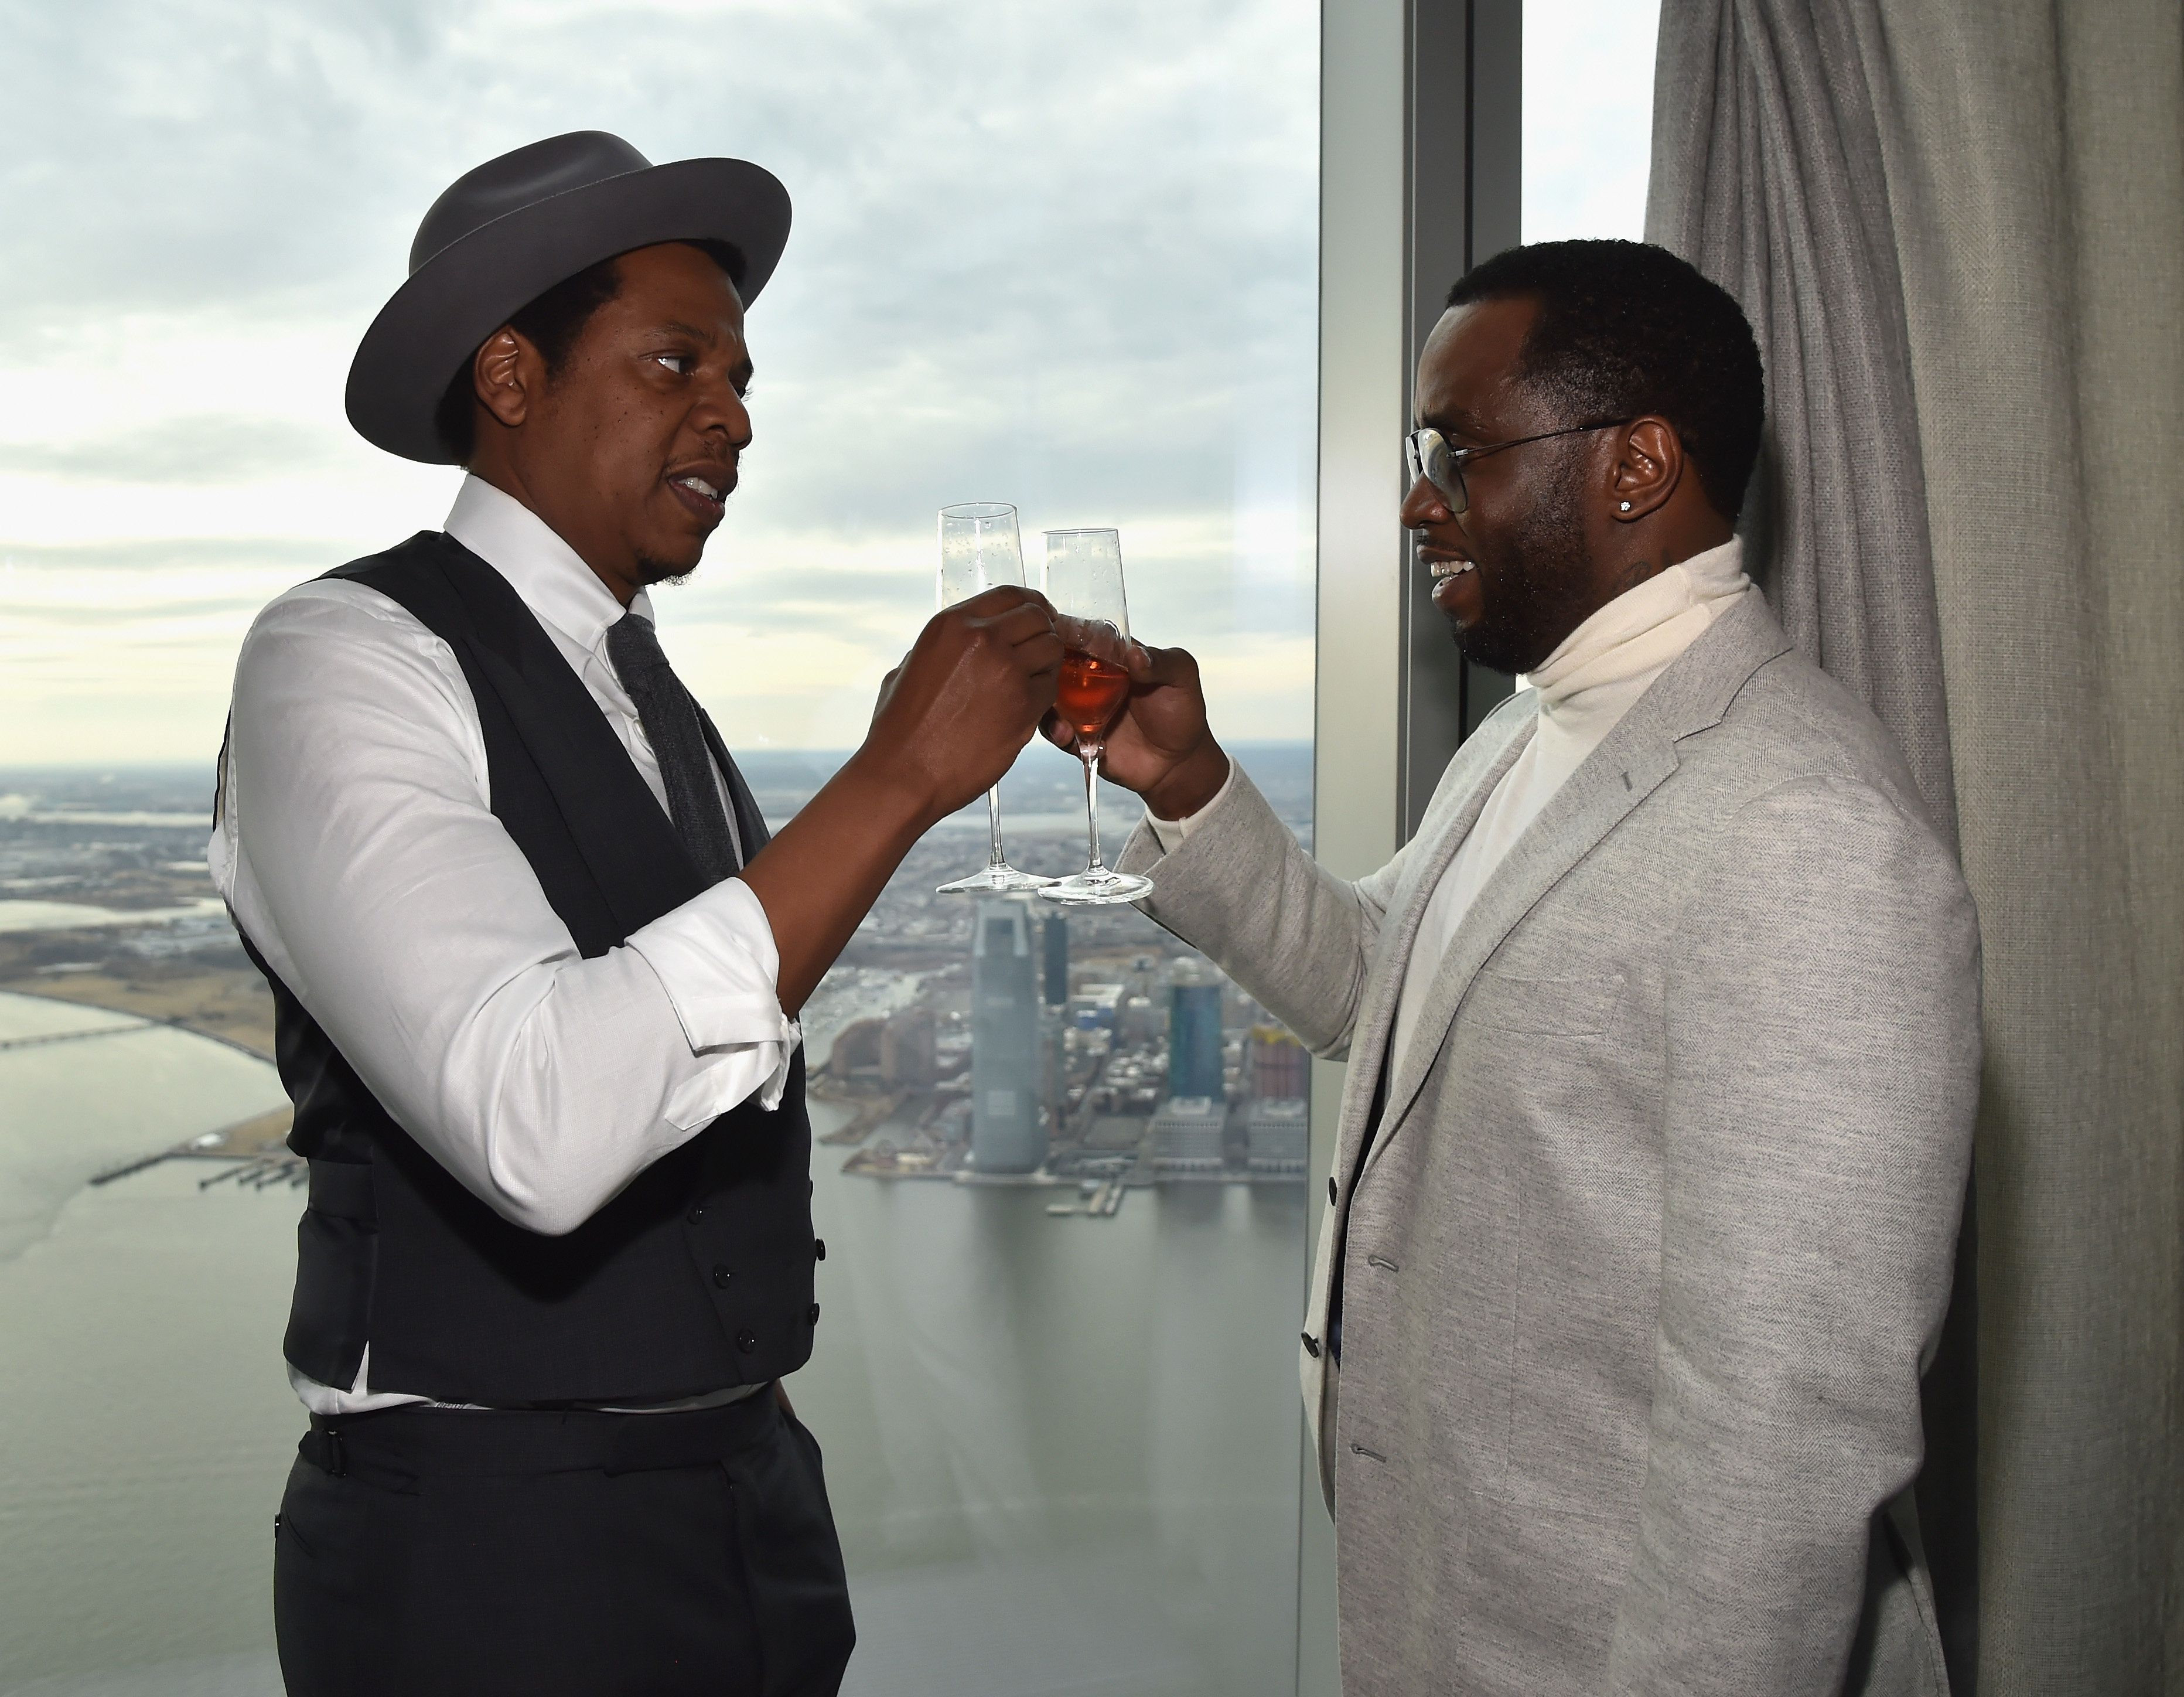 NEW YORK, NY - JANUARY 27:  Jay-Z and Sean 'Diddy' Combs attend Roc Nation THE BRUNCH at One World Observatory on January 27, 2018 in New York City.  (Photo by Kevin Mazur/Getty Images for Roc Nation)